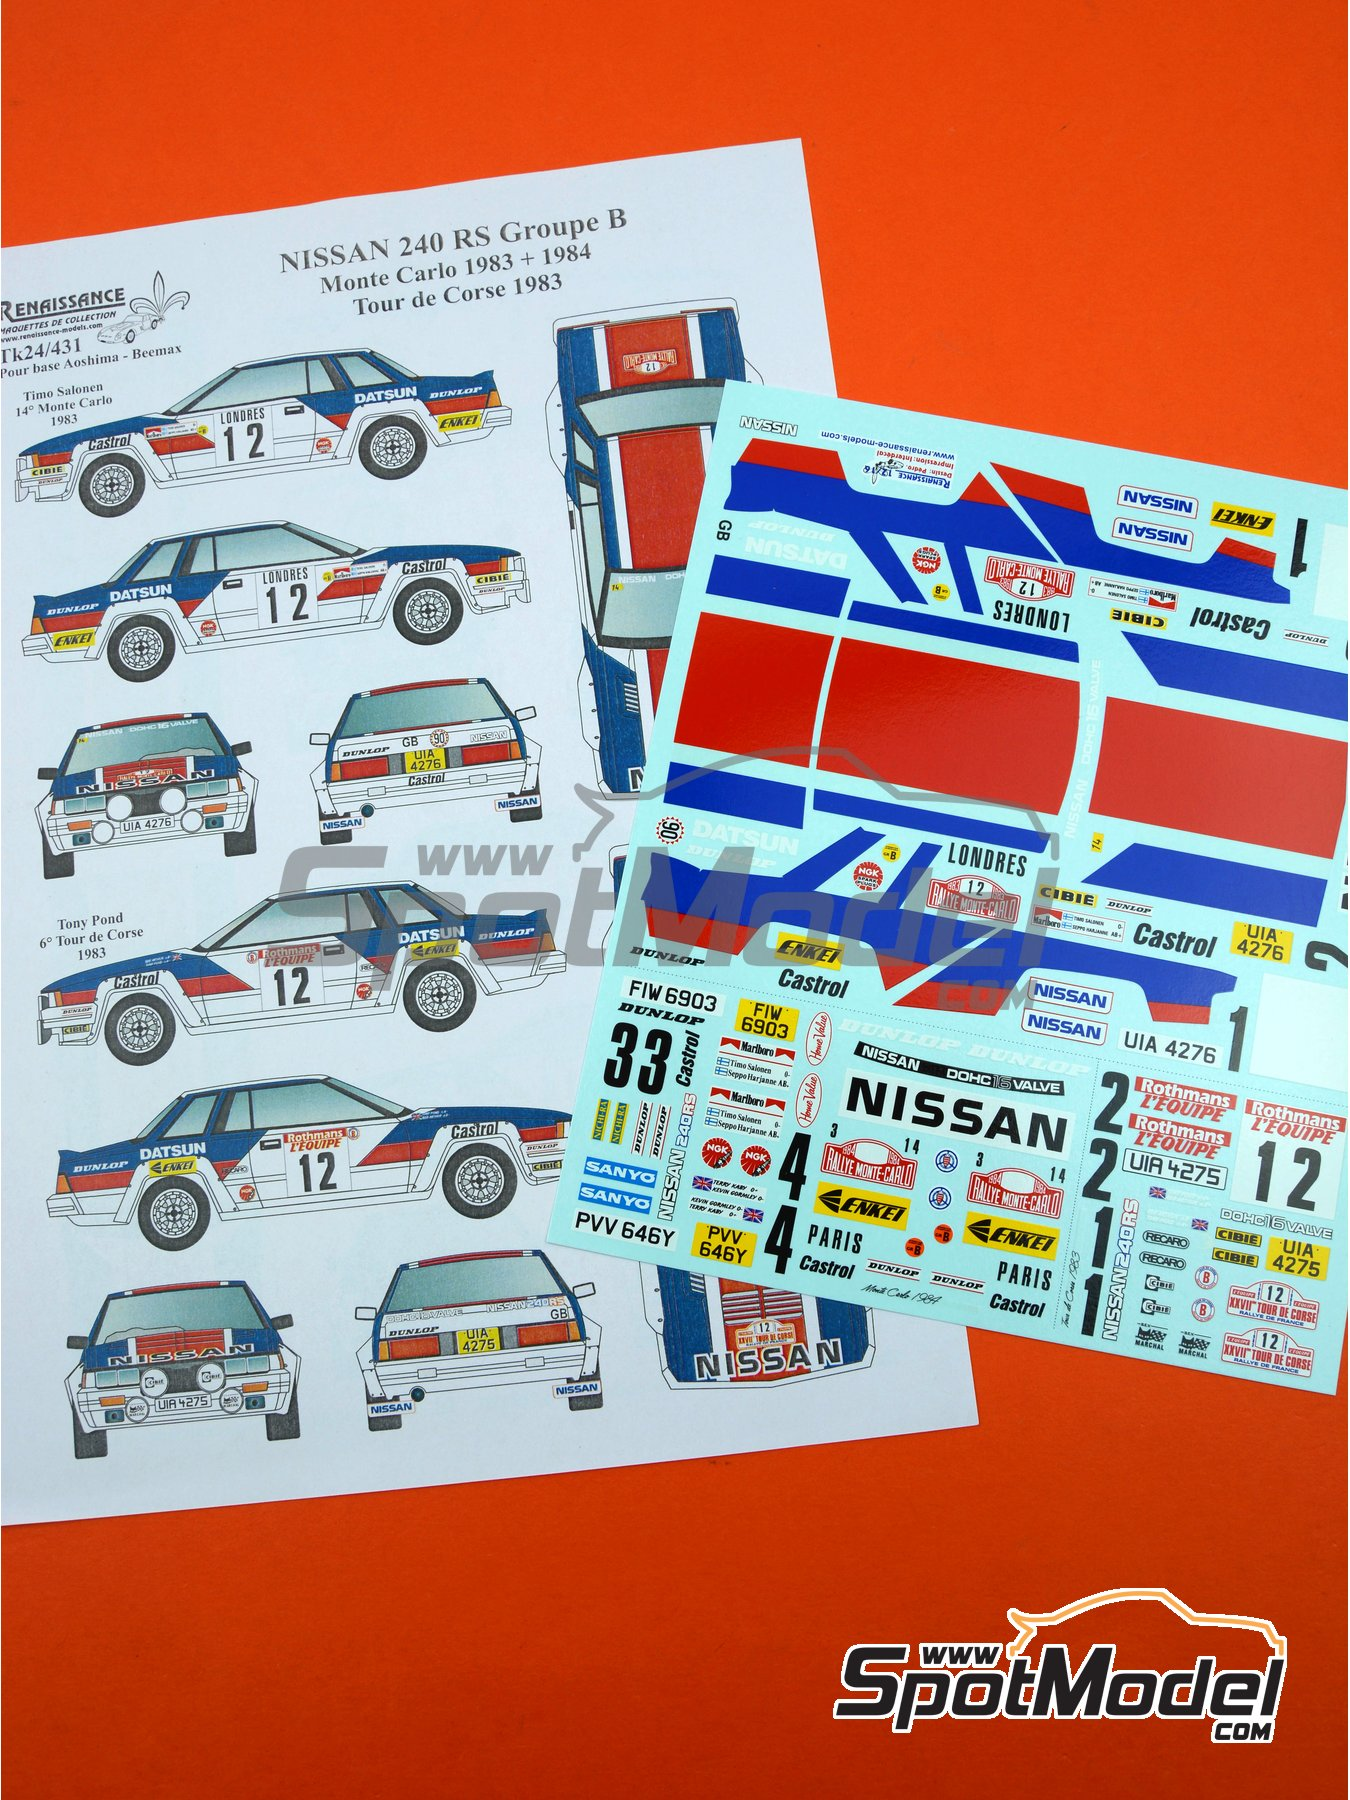 Nissan 240RS Group B - Montecarlo Rally, Tour de Corse 1983, 1984 | Marking in 1/24 scale manufactured by Renaissance Models (ref. TK24-431) image